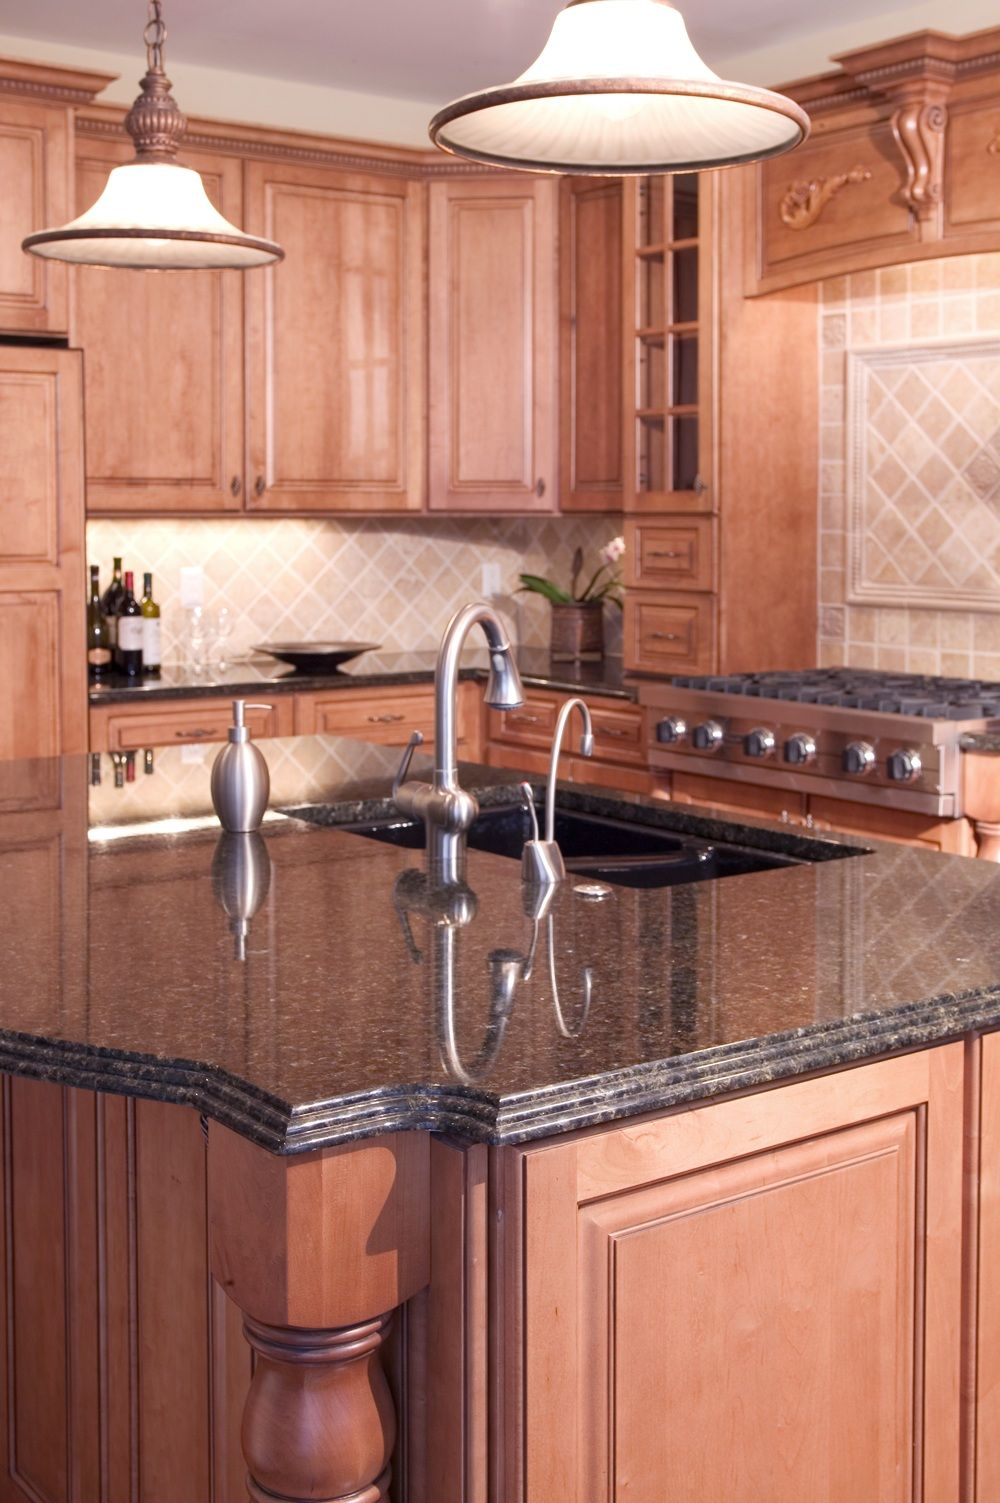 kitchen island countertop kitchen cabinets and countertops beige granite countertop colors yellow granite countertop colors black